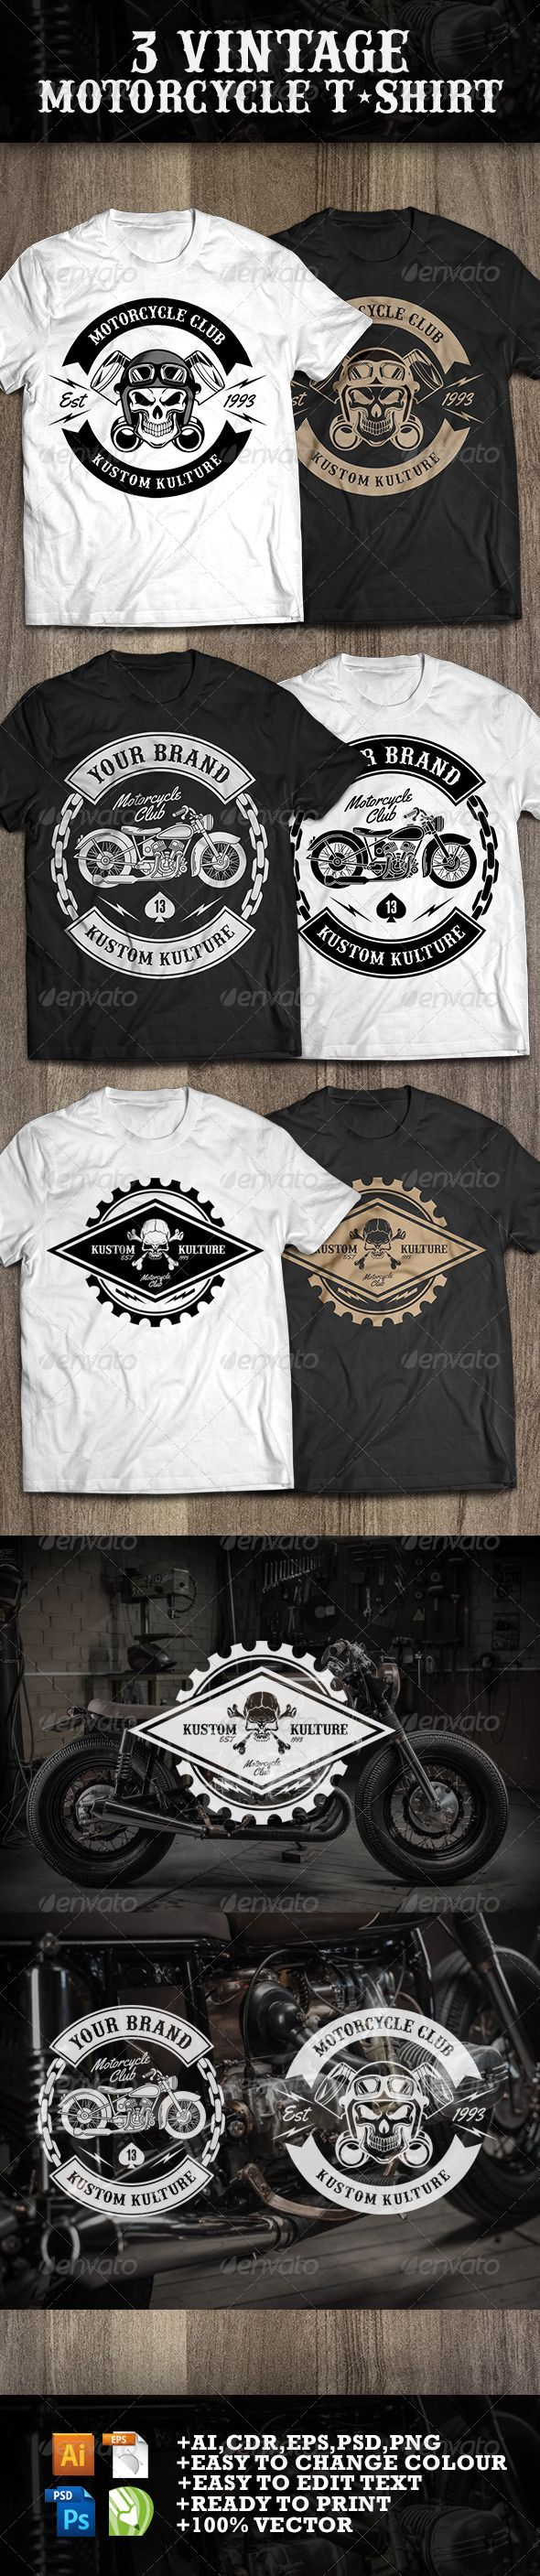 3 Vintage T-shirt Motorcycle Template PSD, Vector EPS, AI. Download here: http://graphicriver.net/item/3-vintage-tshirt-motorcycle/7779750?ref=ksioks